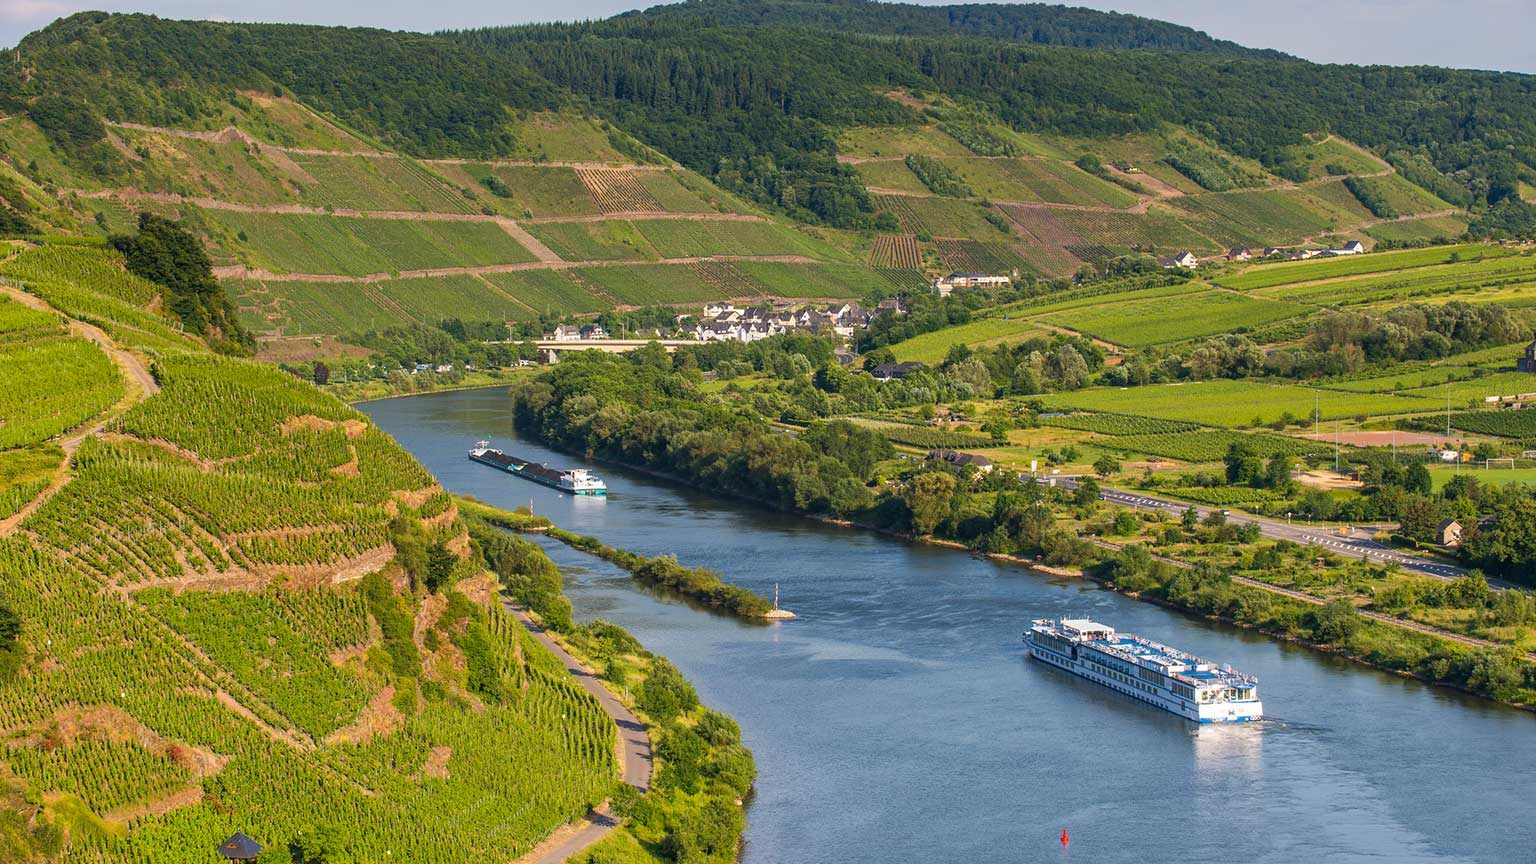 Aerial view of river cruises with hillside vineyards in Germany